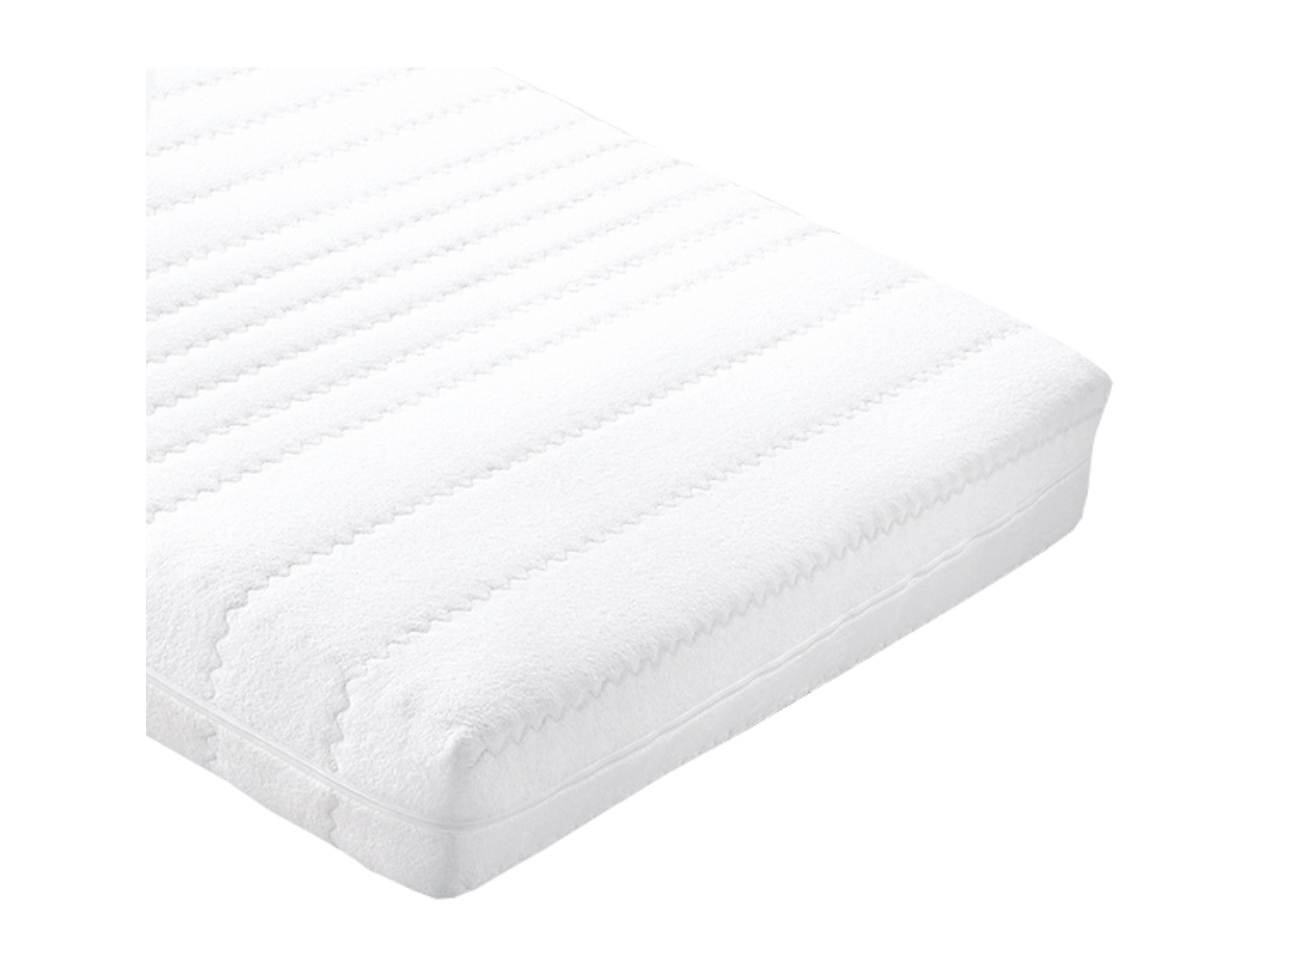 Kaltschaummatratze 120x200 Platon Cold Foam Mattress